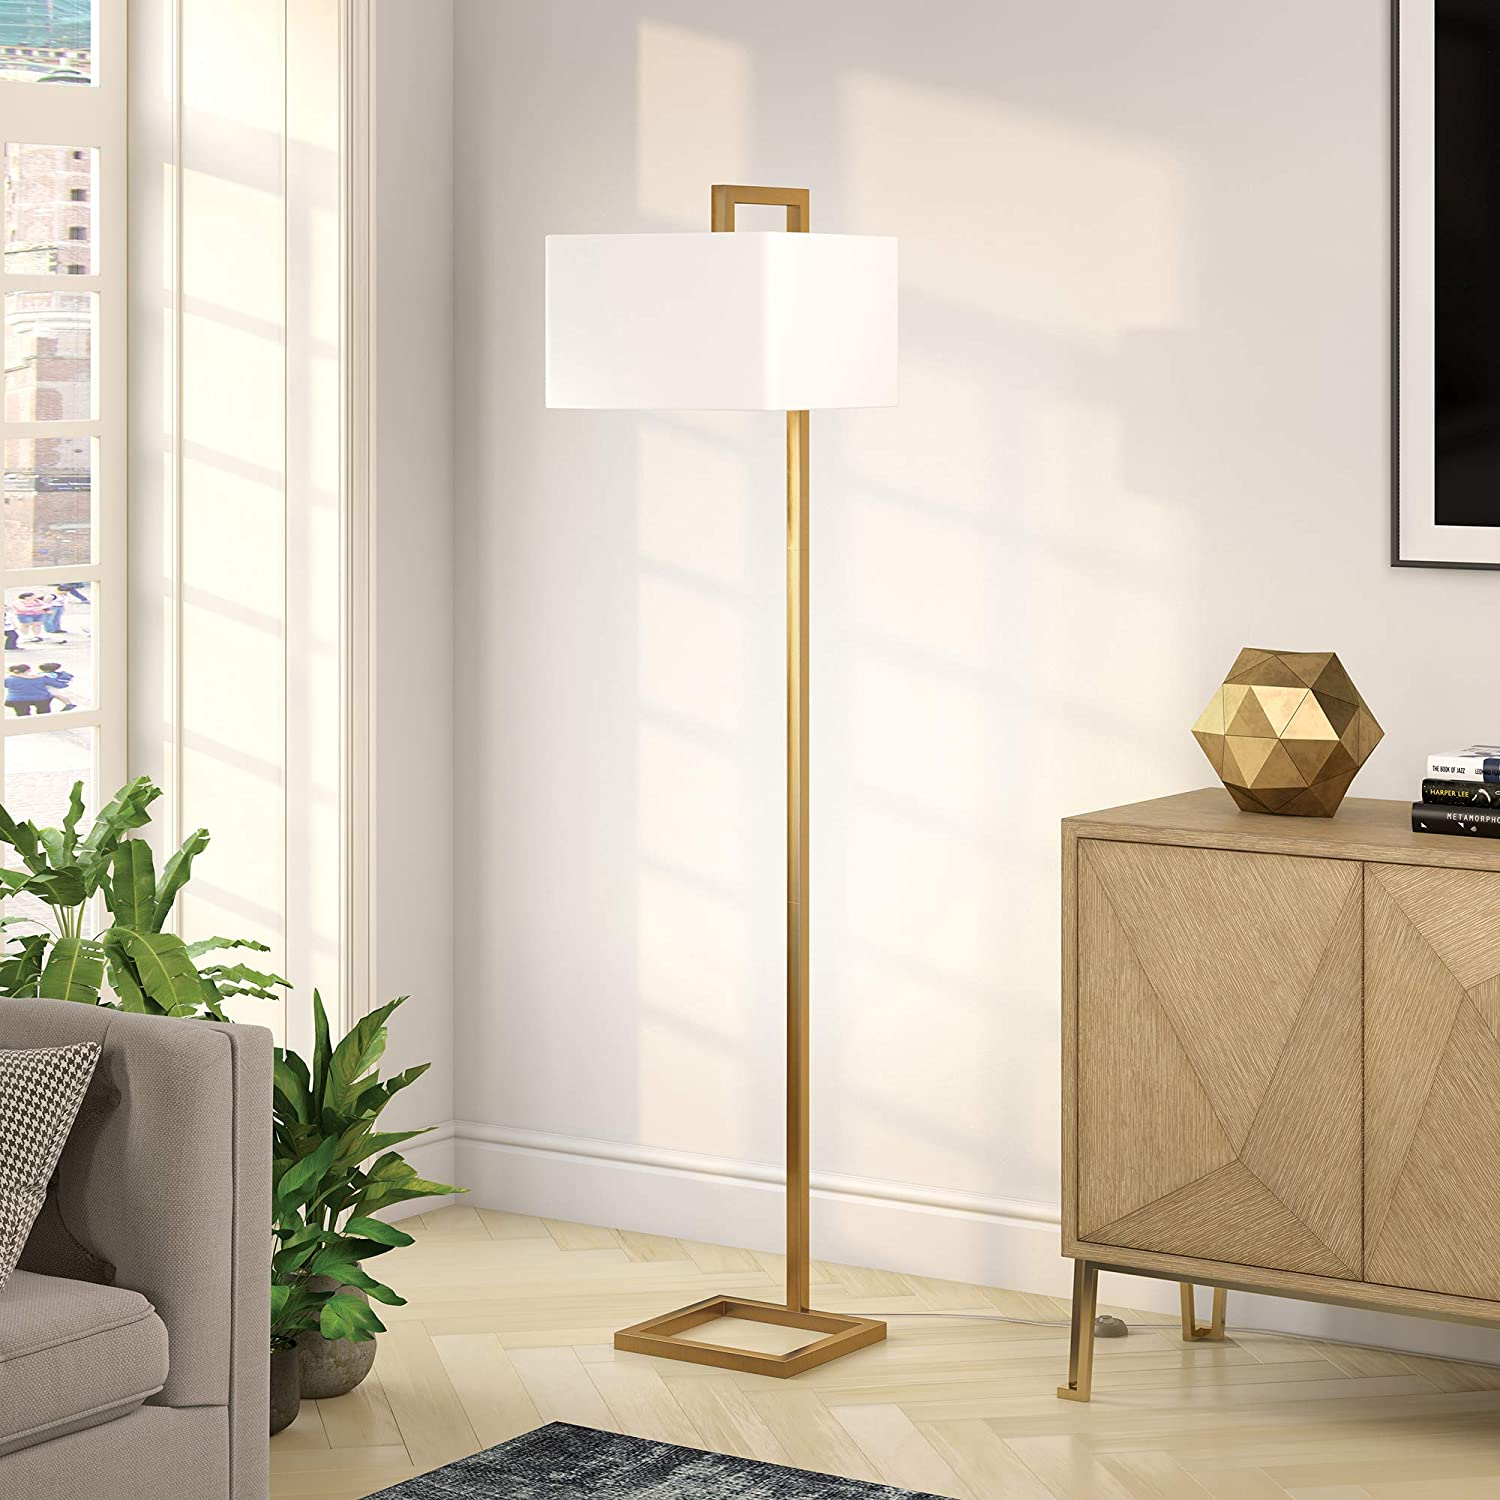 Henn&Hart FL0330 Modern Angular Lines in A Brass Finish, with White Linen Square Shade, for Living Room, Bedroom, Office Contemporary Minimalist Floor Lamp, Gold